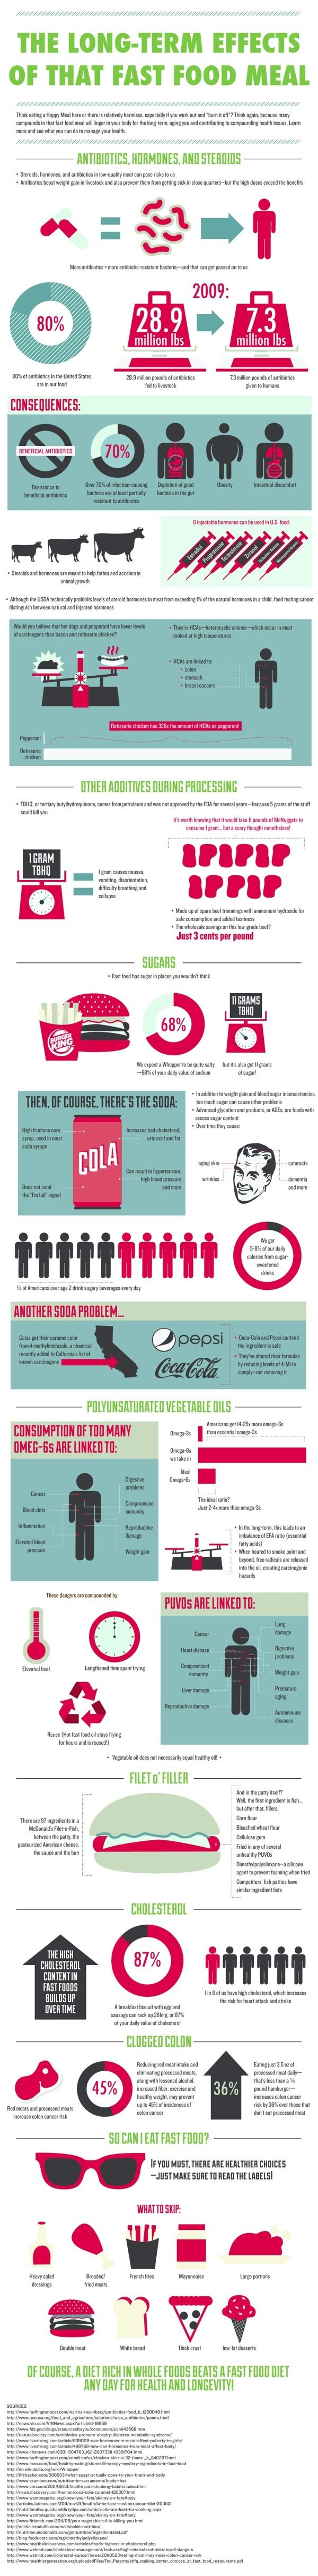 The Long-Term Effects of That Fast Food Meal [Infographic] from KimberlySnyder.net http://www.kimberlysnyder.net/blog/2012/08/21/the-long-term-effects-of-that-fast-food-meal/